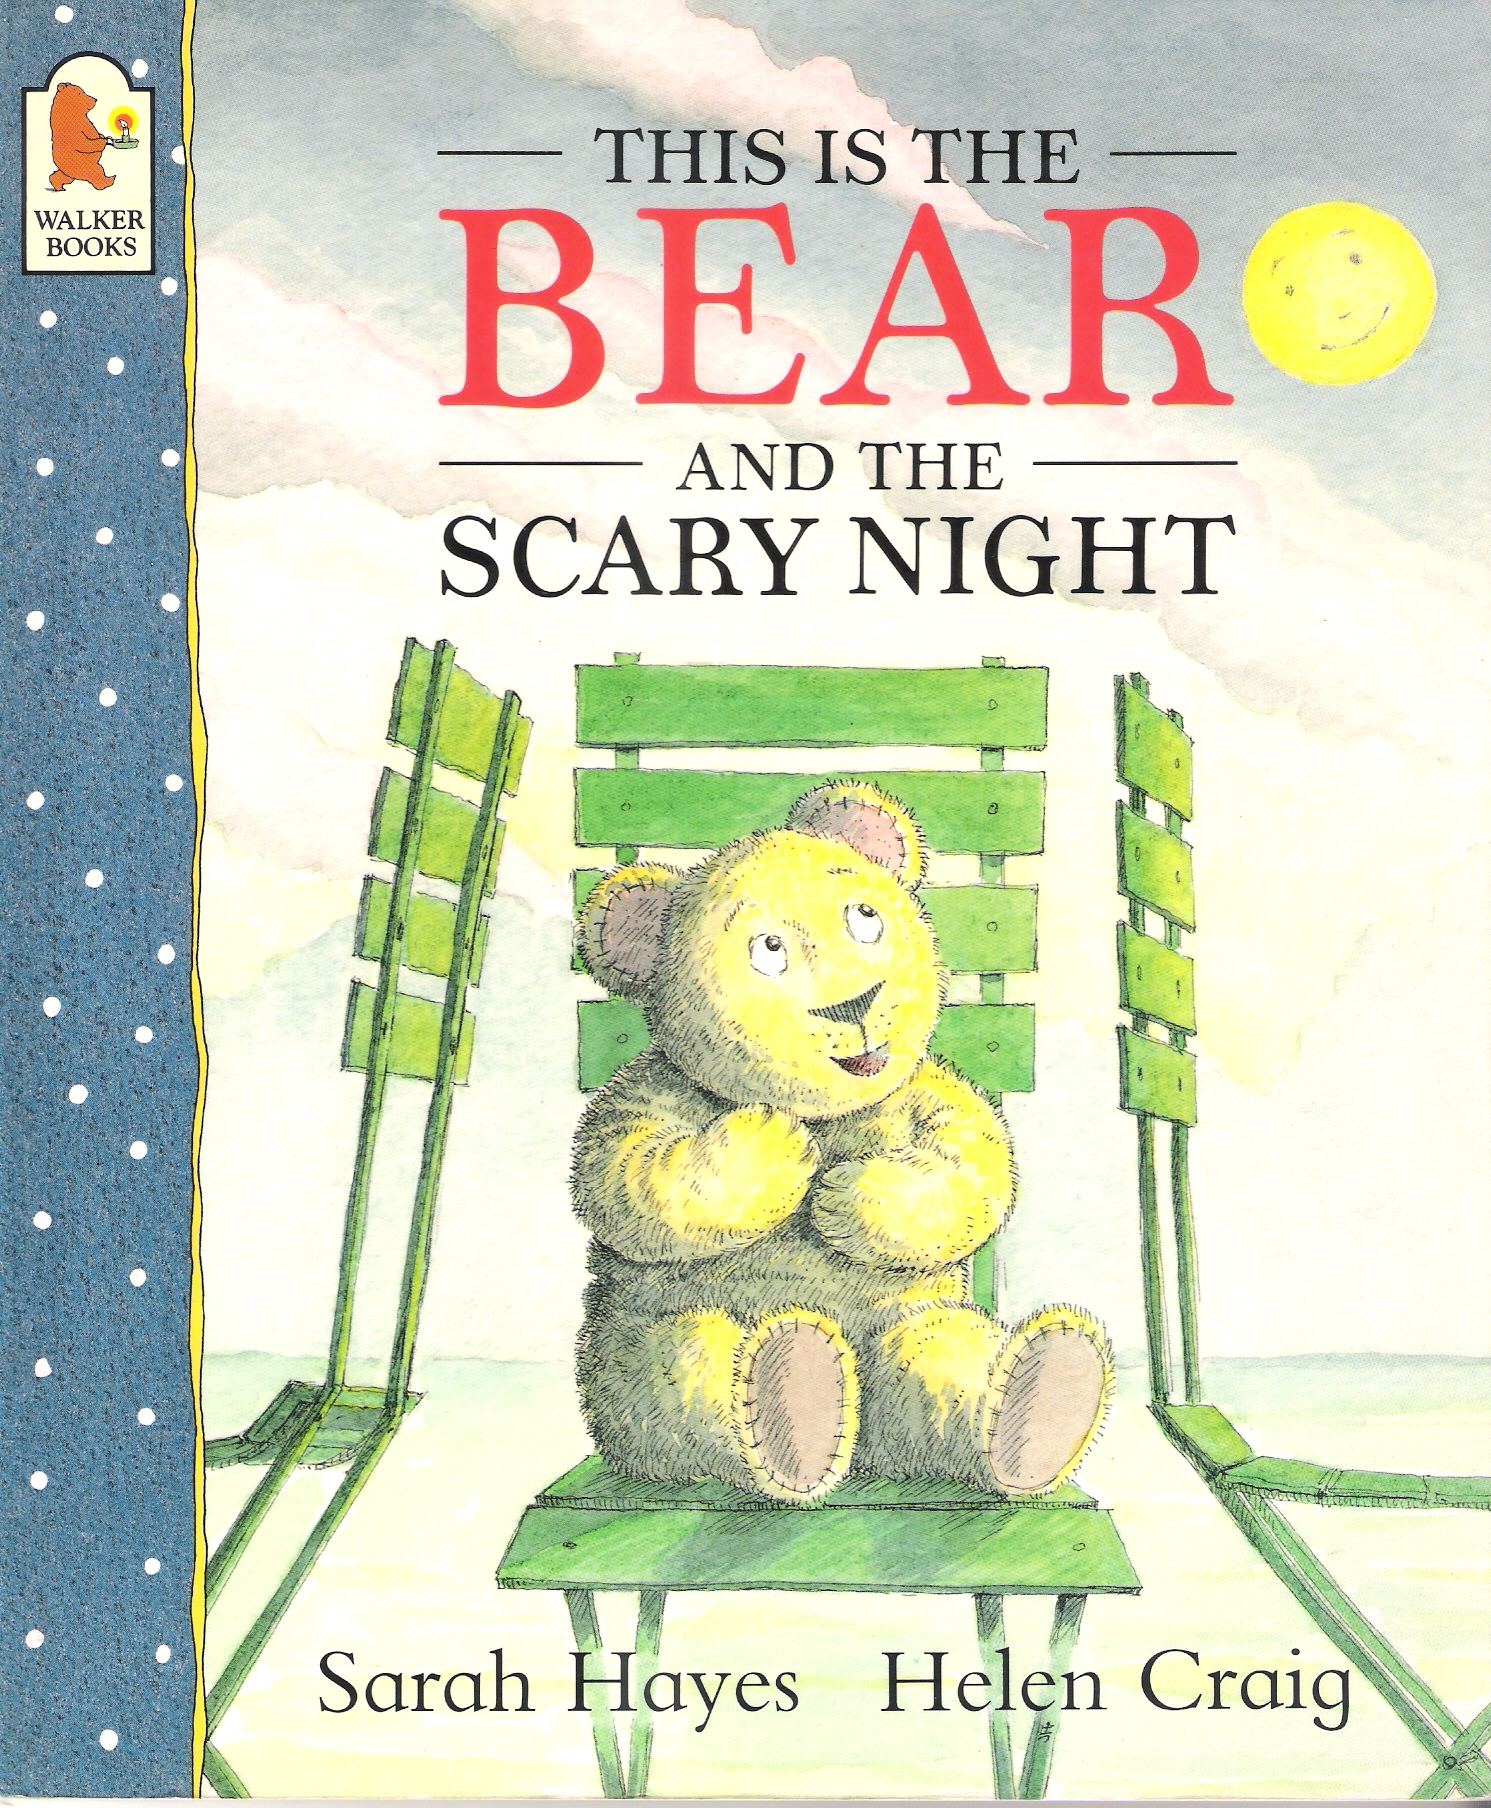 This is the bear and the scary night